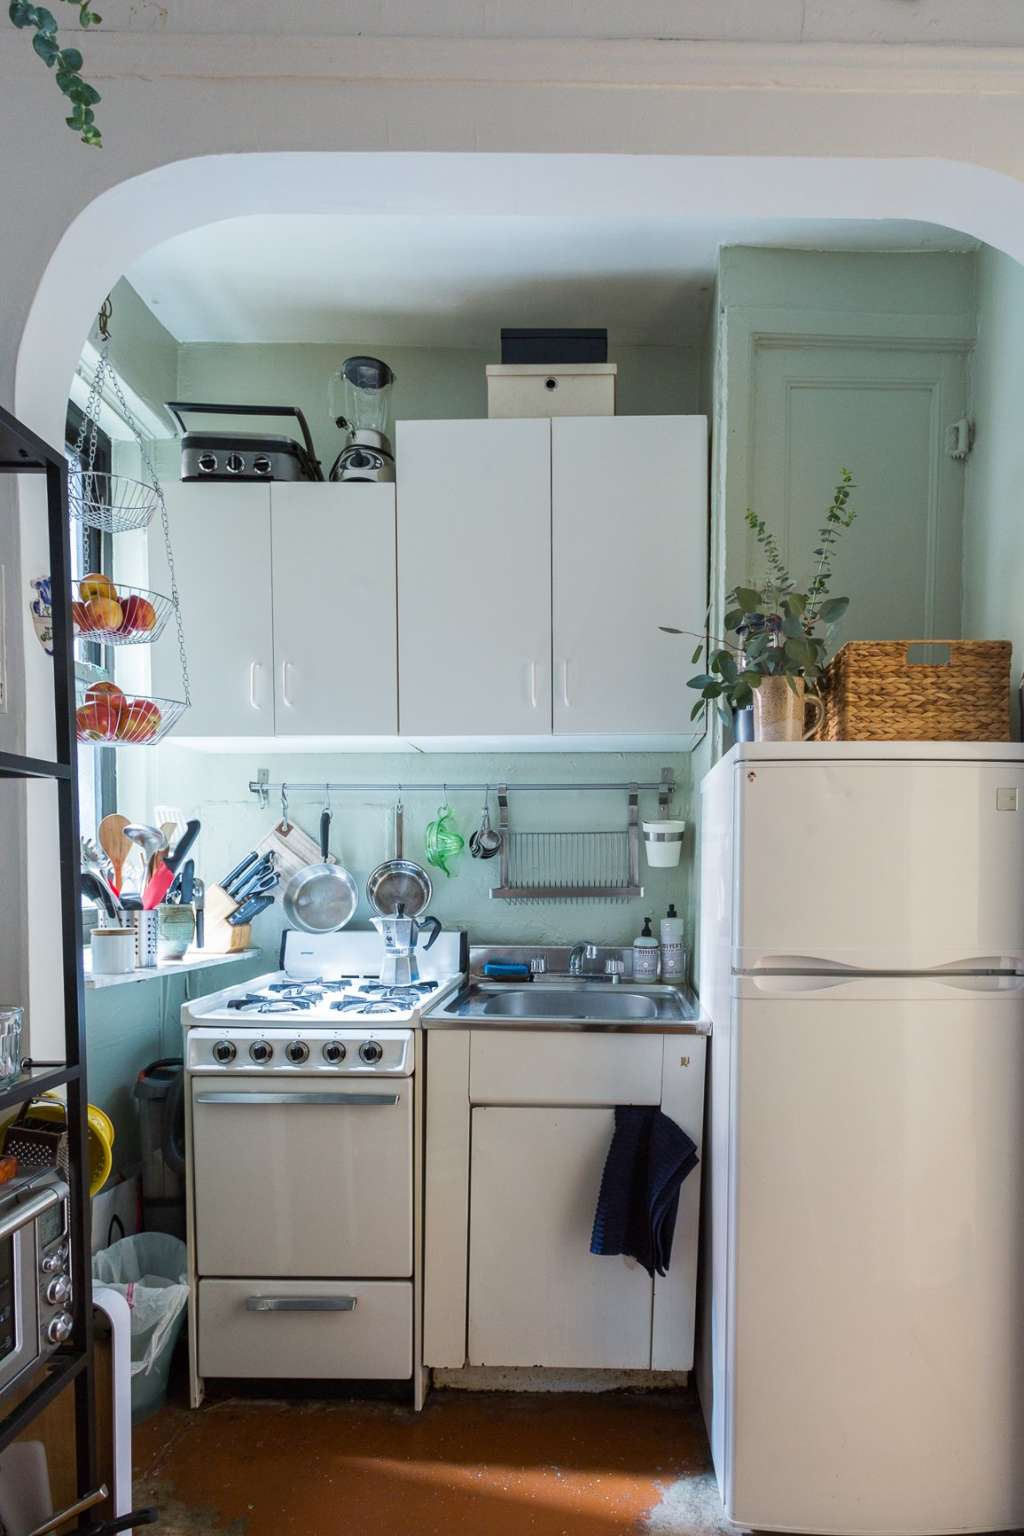 10 Genius Tips for Cooking in a Tiny Kitchen | Kitchn